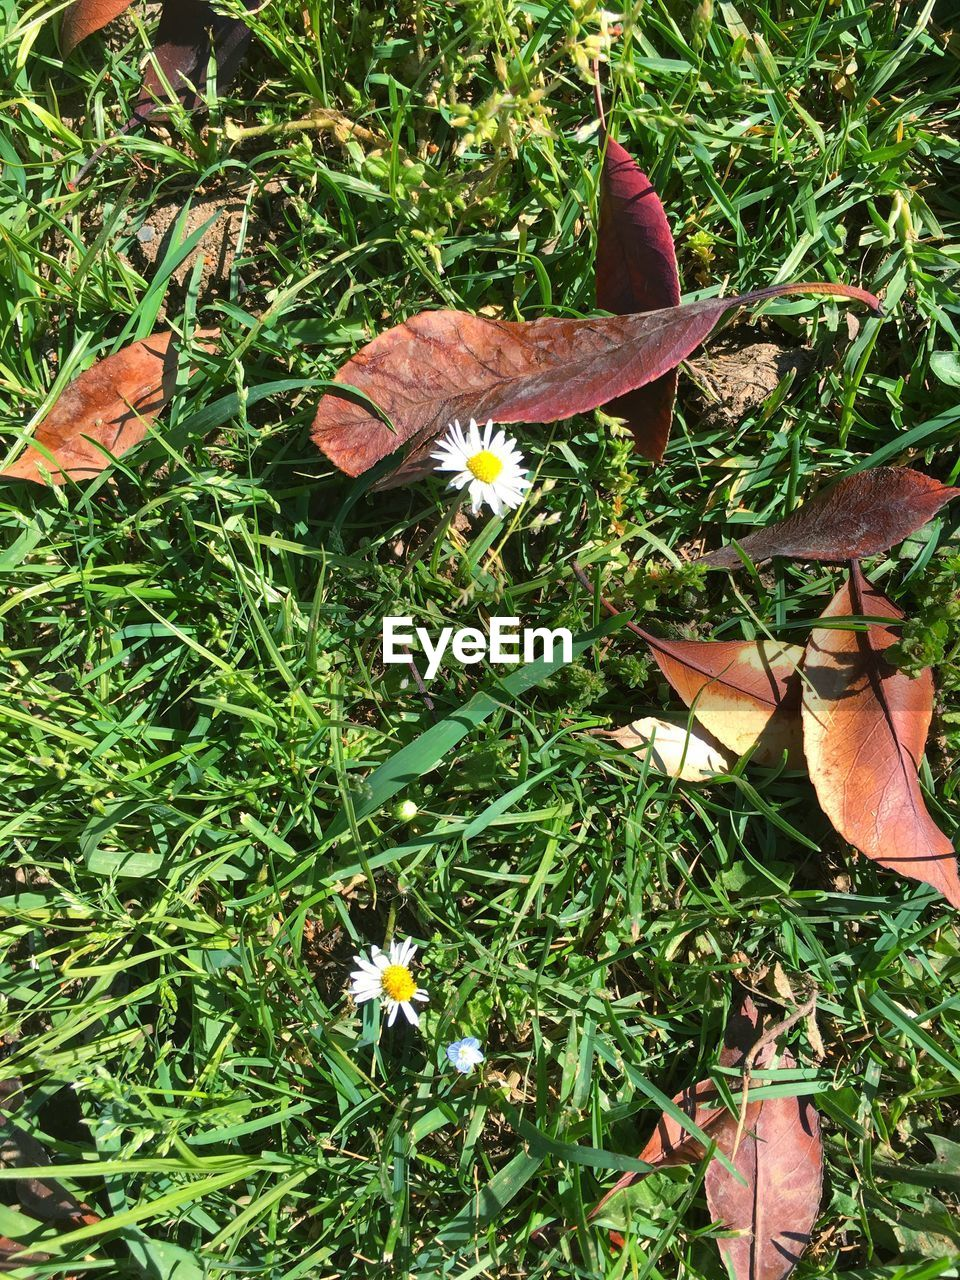 grass, growth, nature, no people, green color, plant, day, leaf, outdoors, flower, field, beauty in nature, close-up, fragility, flower head, animal themes, freshness